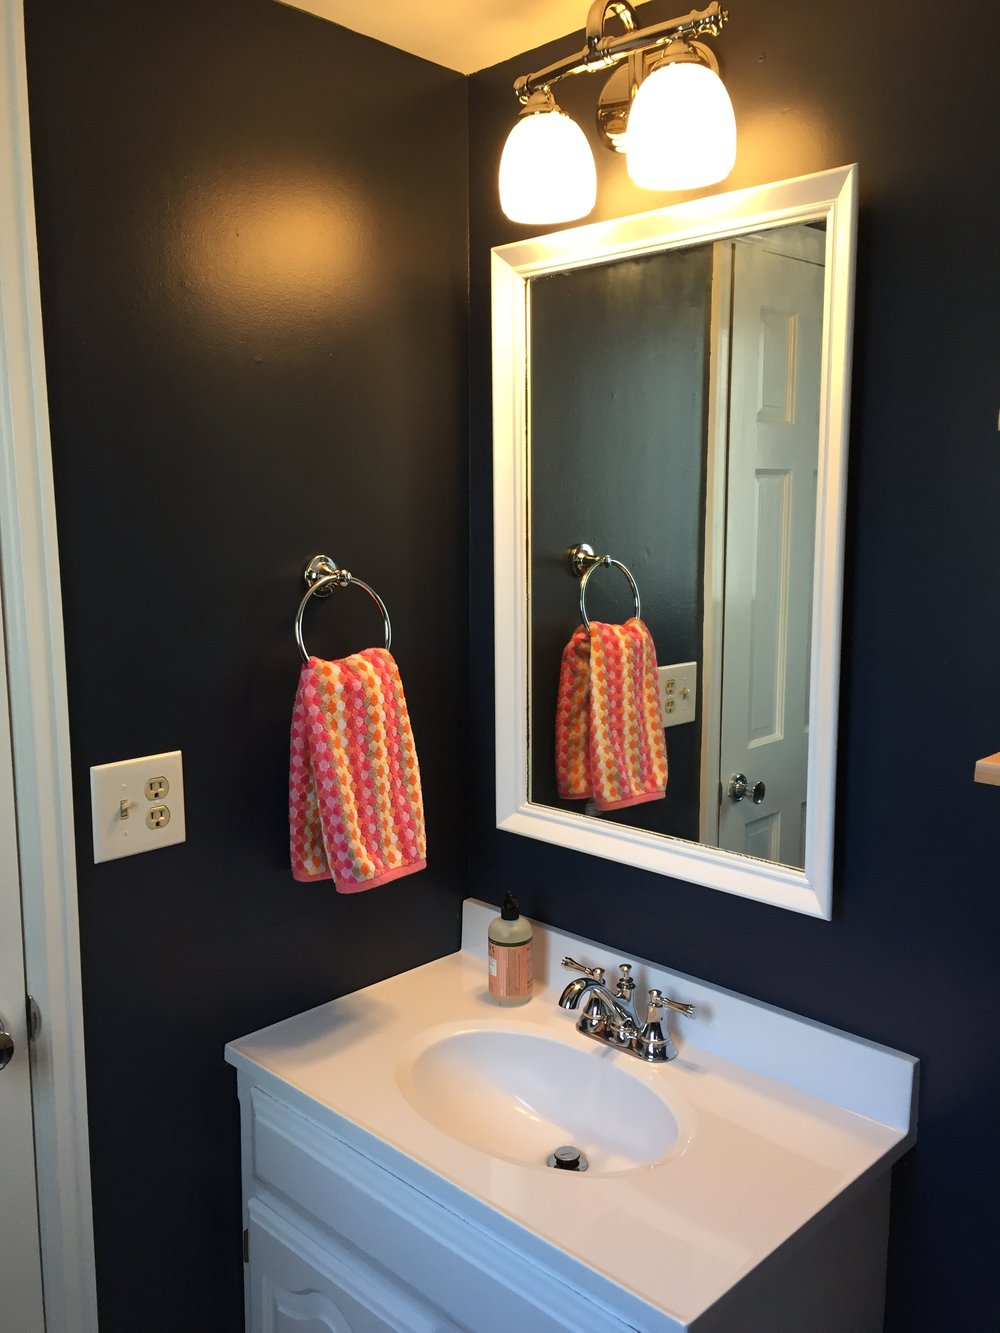 Updated bathroom vanity with painted mirror and new light fixture.